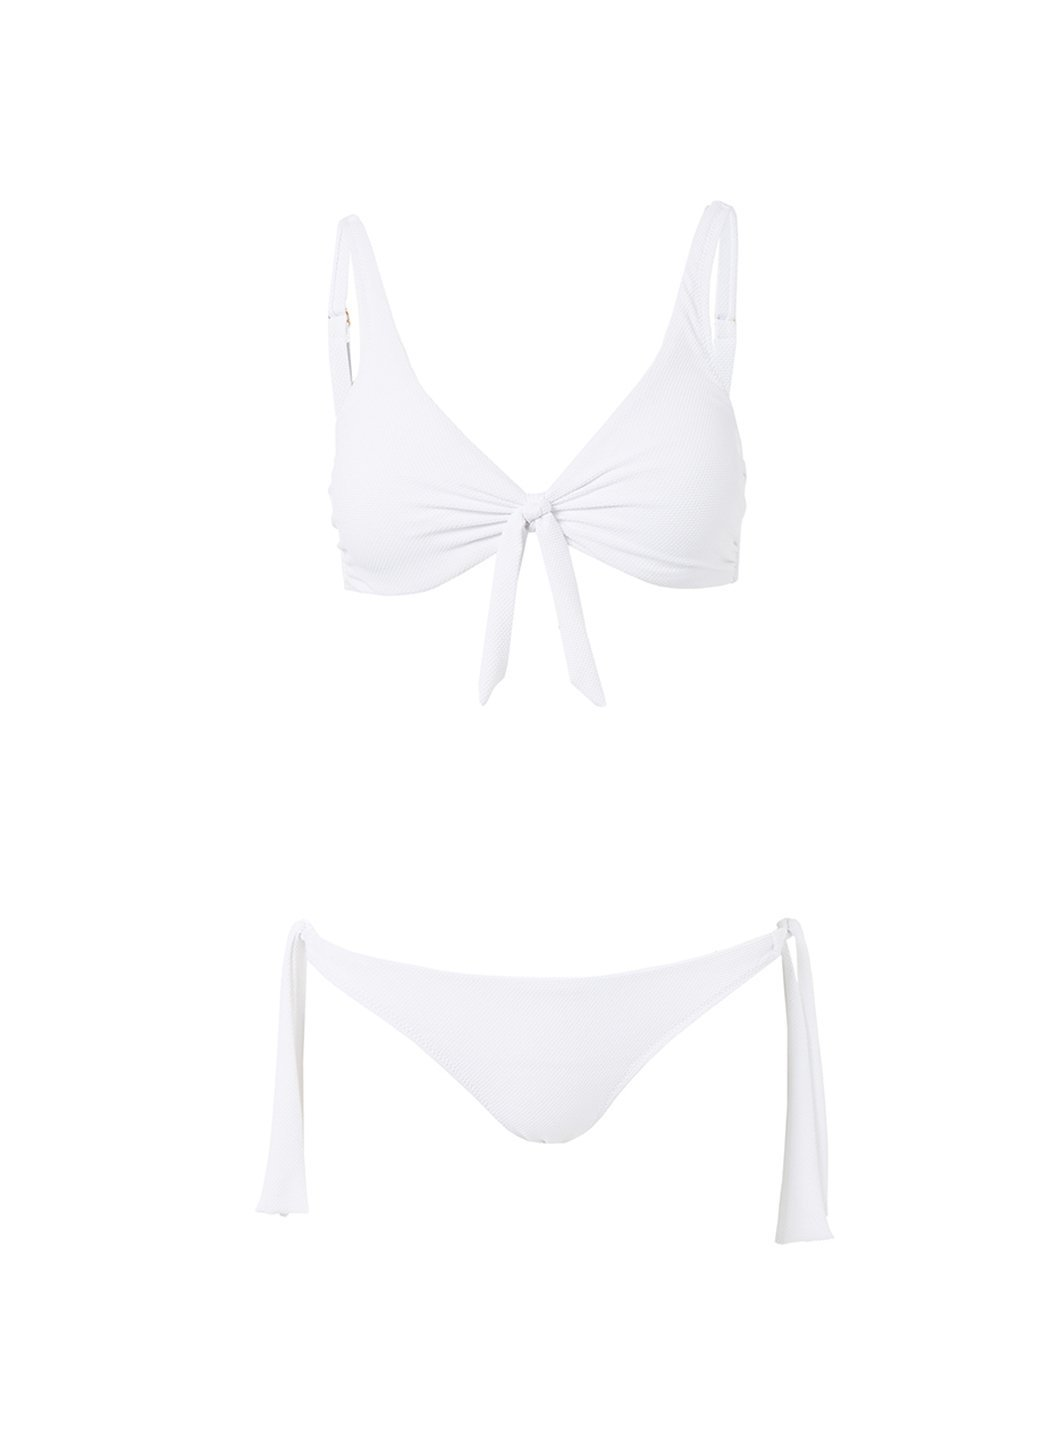 sanjuan white pique overtheshoulder knot supportive bikini 2019